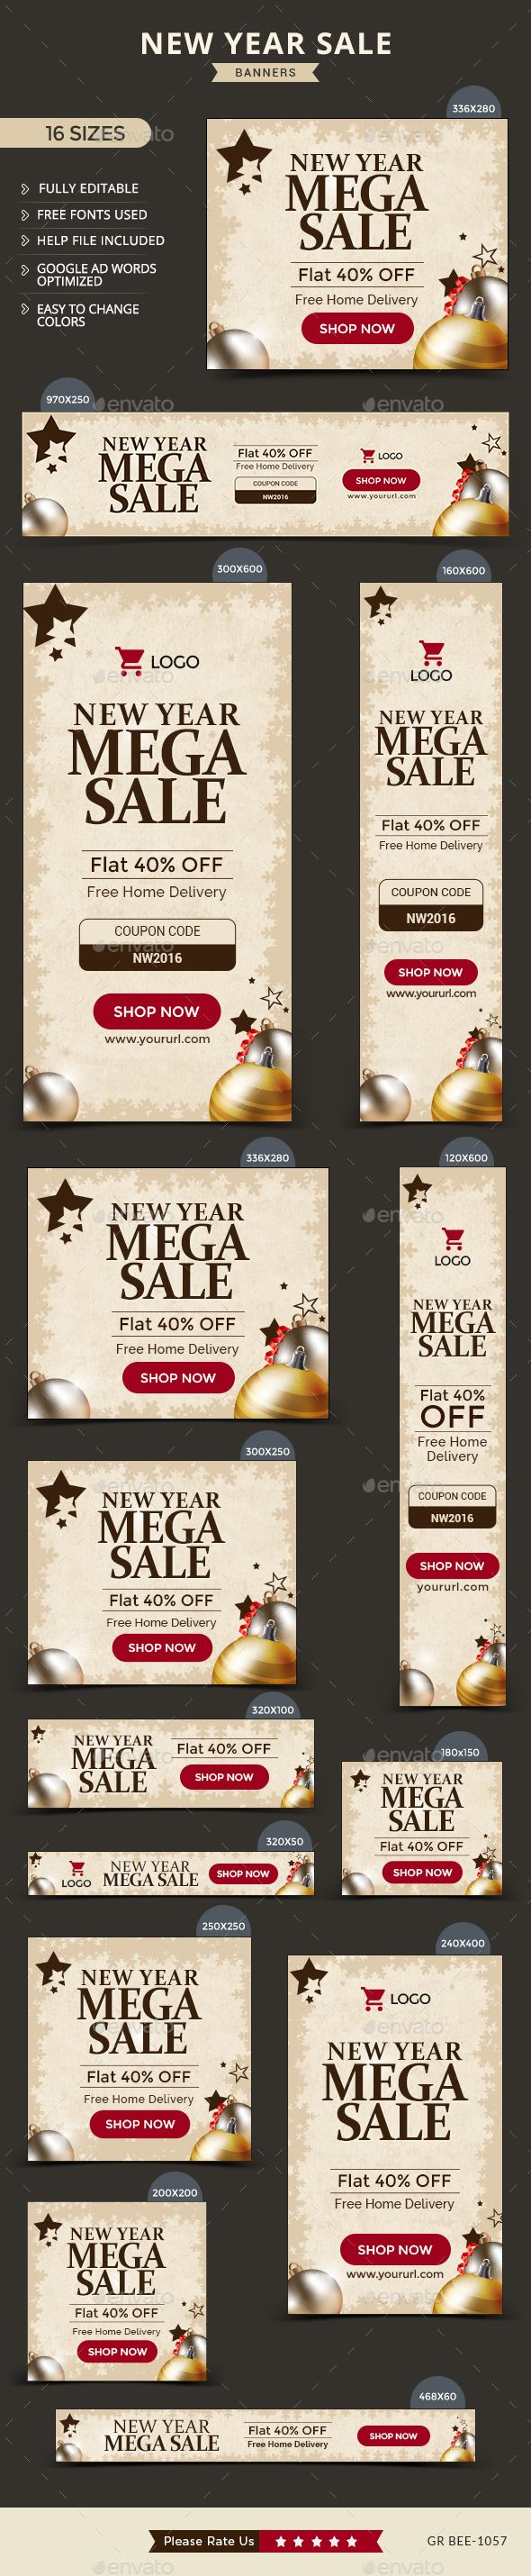 New Year Sale Web Banners Template PSD #design #ad #promote Download: http://graphicriver.net/item/new-year-sale-banners/14196255?ref=ksioks